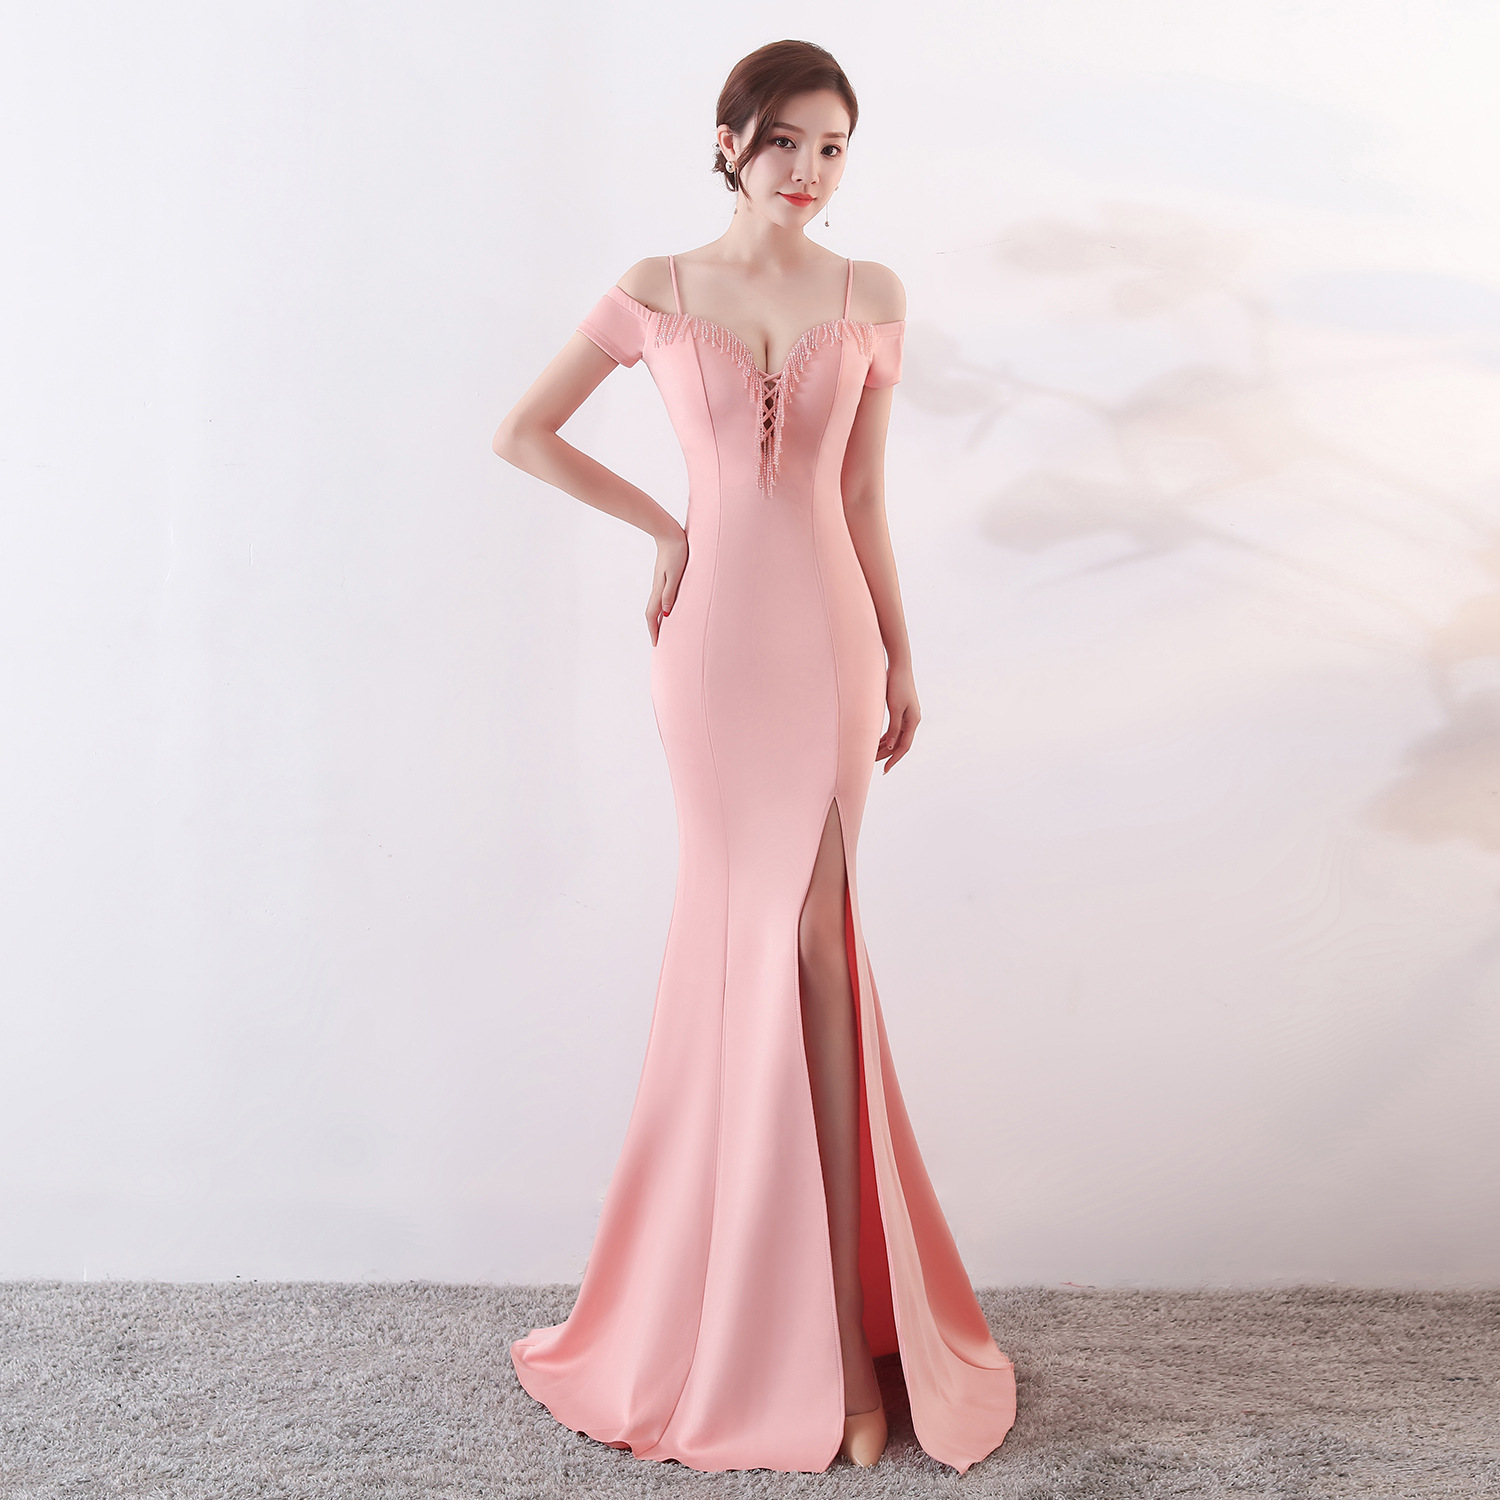 1370 # Evening Gown Long Women's New Style Camisole-Banquet Host Off-Shoulder Fishtail Slit Slim Fit One Piece